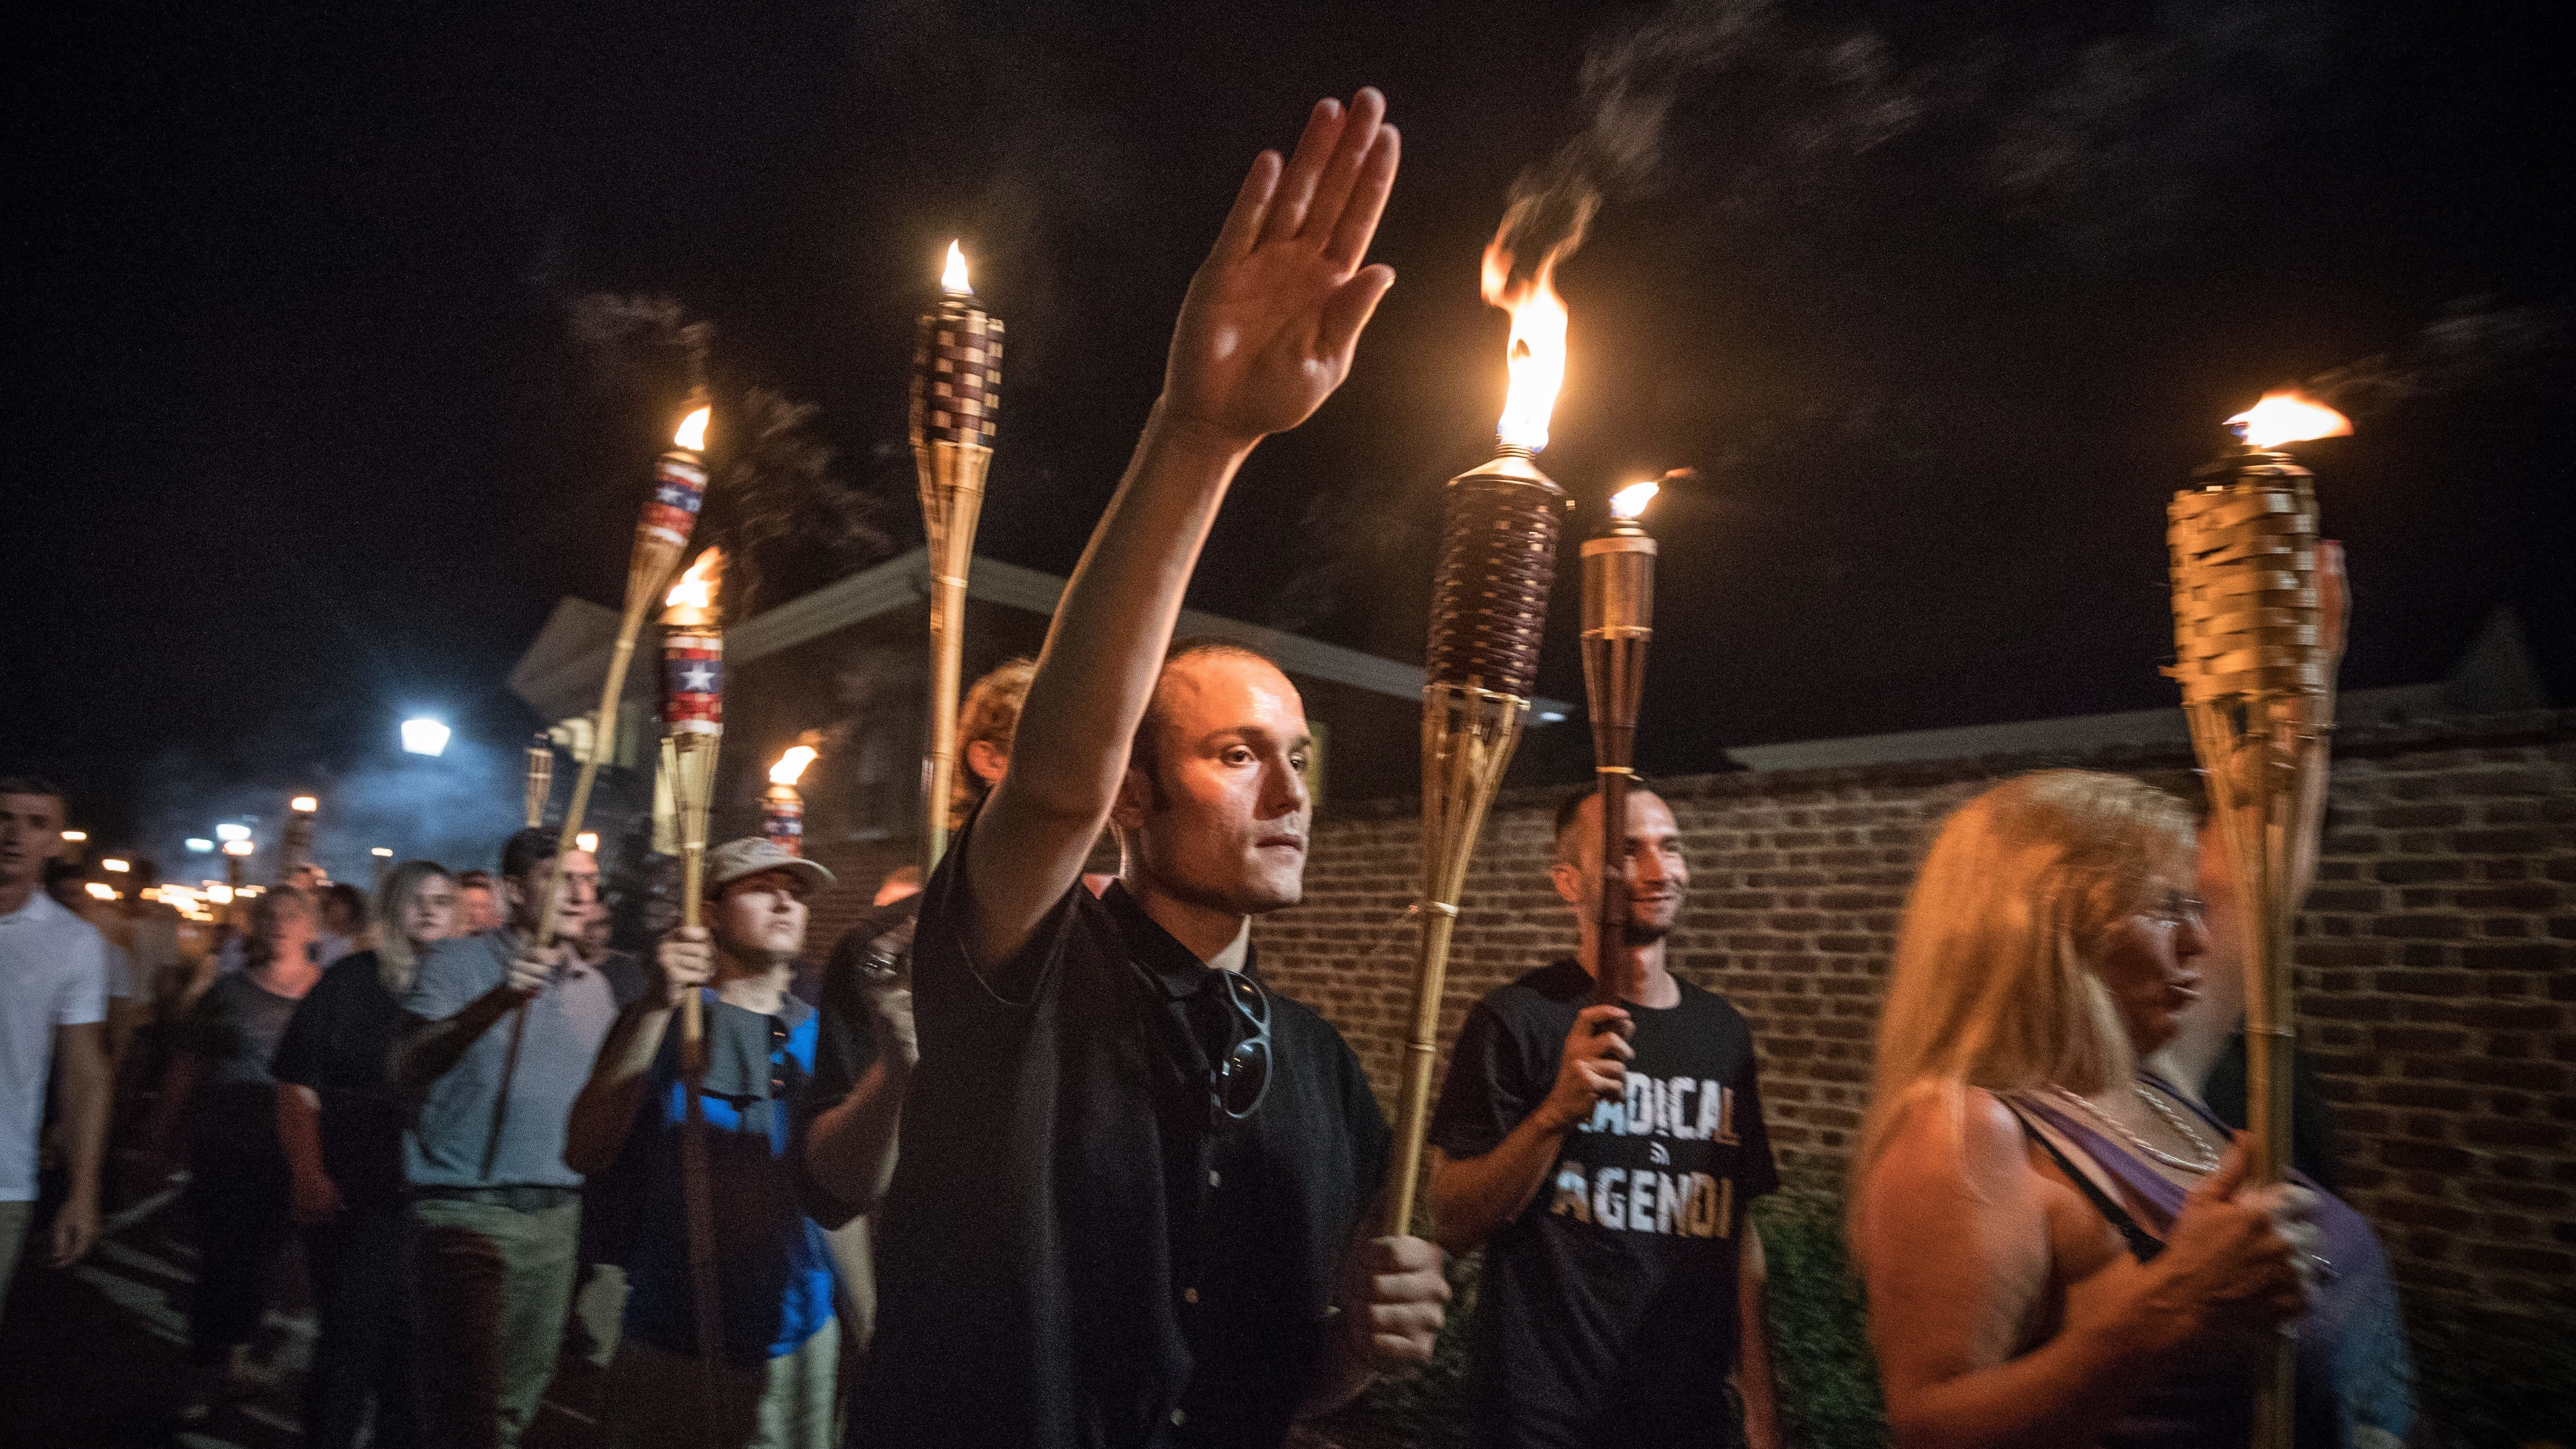 Charlottesville: United Nations warns USA over 'alarming' racism